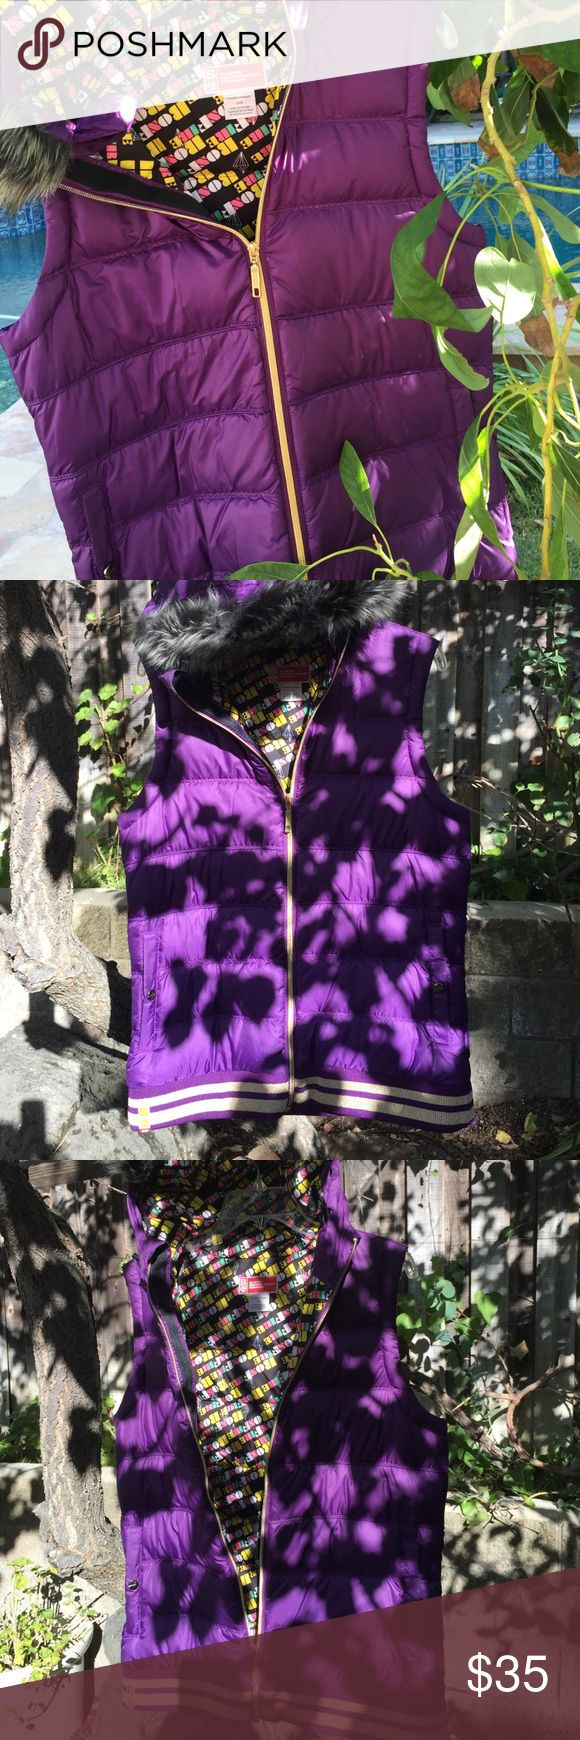 Purple snowboarding best with hood Almost new worn once bonfire snowboarding company down vest bonfire snowboarding Other